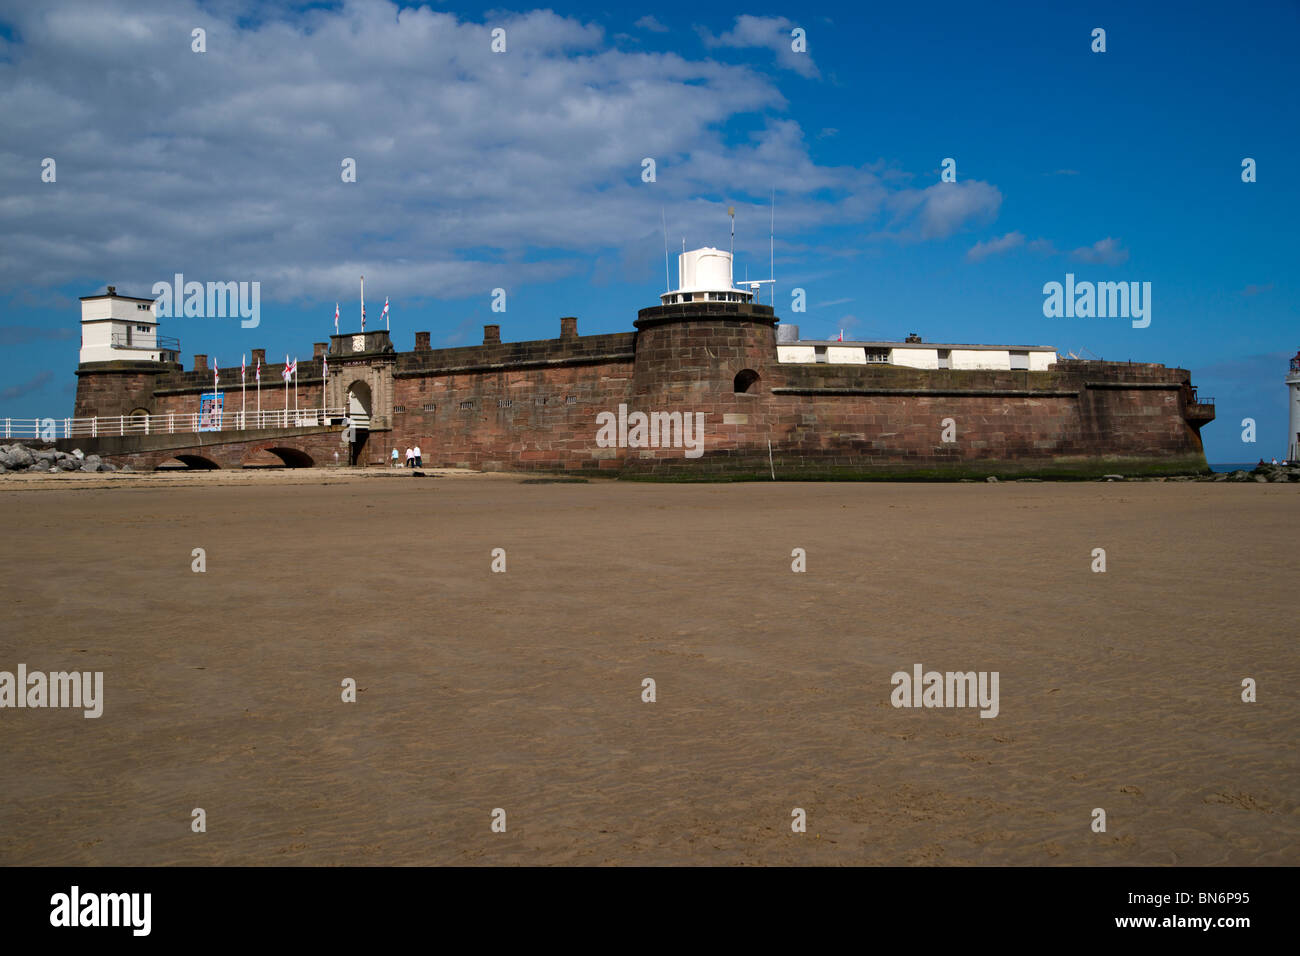 New Brighton on the Wirral coast a popular sea side resort in Wallasey since Victorian times. Now under regeneration - Stock Image